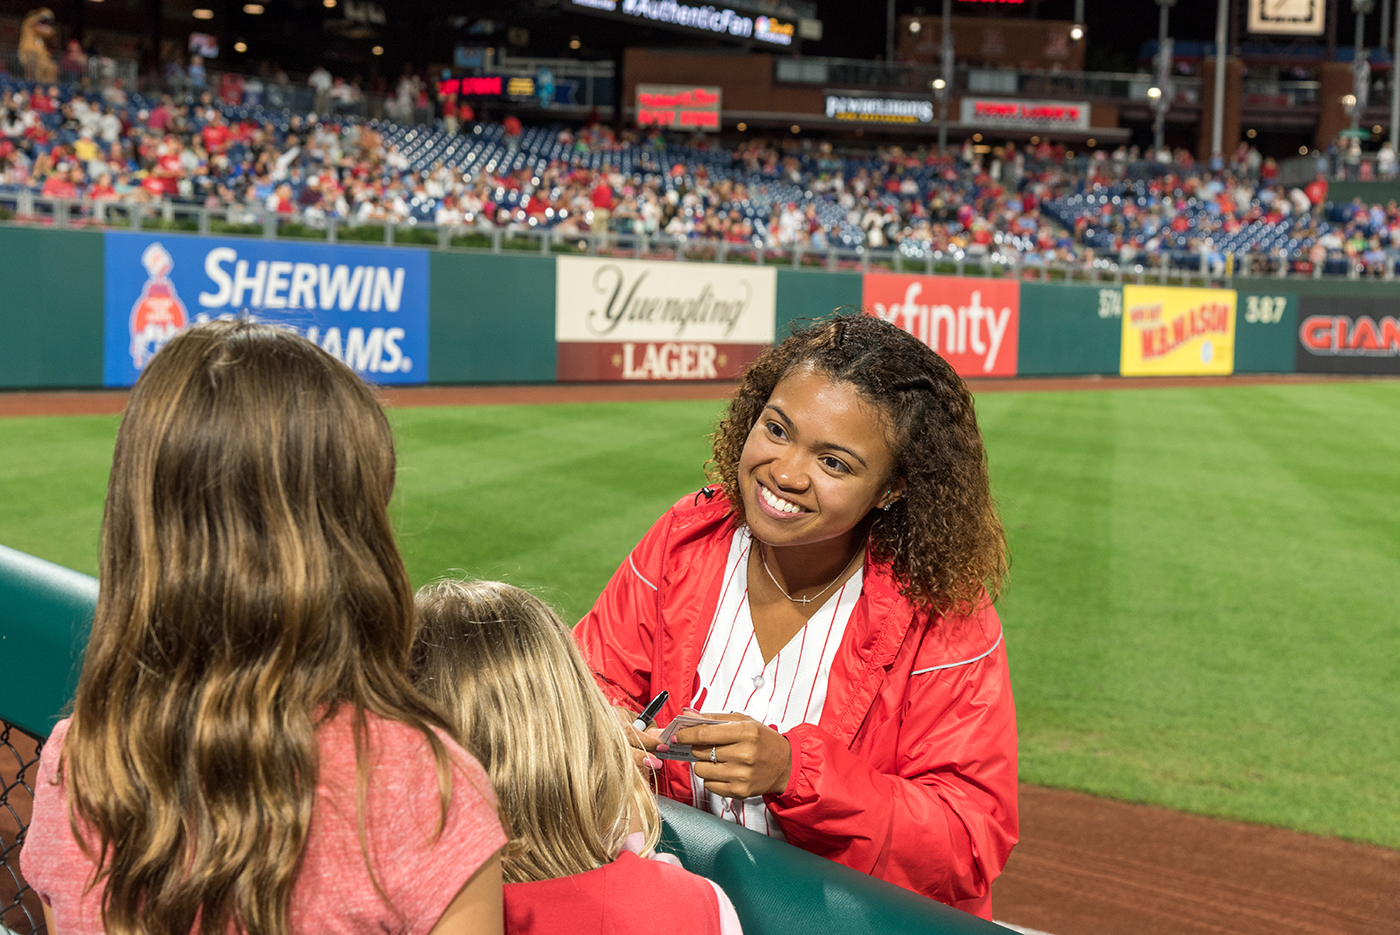 Phillies Ballgirl Jess Hayes autographs her card for fans